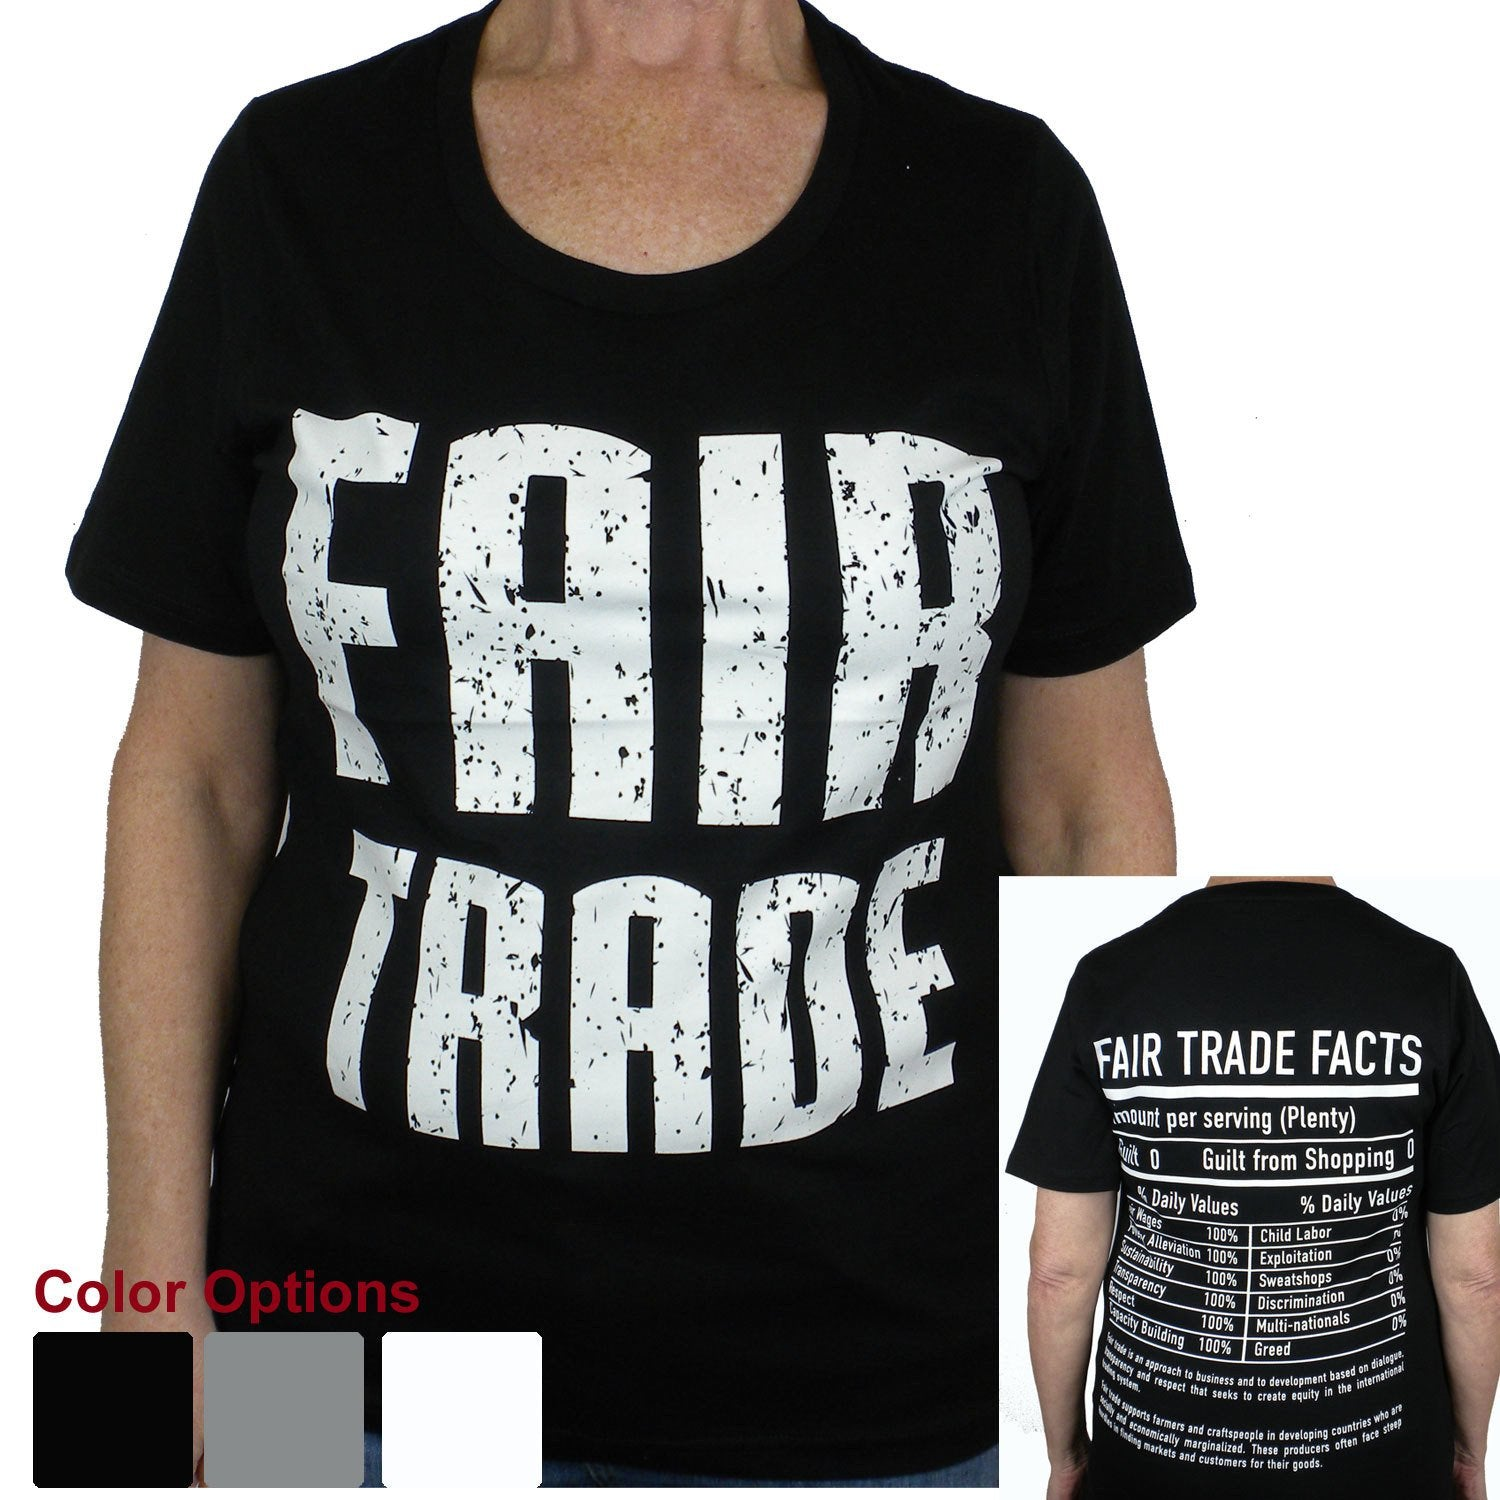 Black Fitted Tee Shirt FT Front - FT Facts on Back - Small